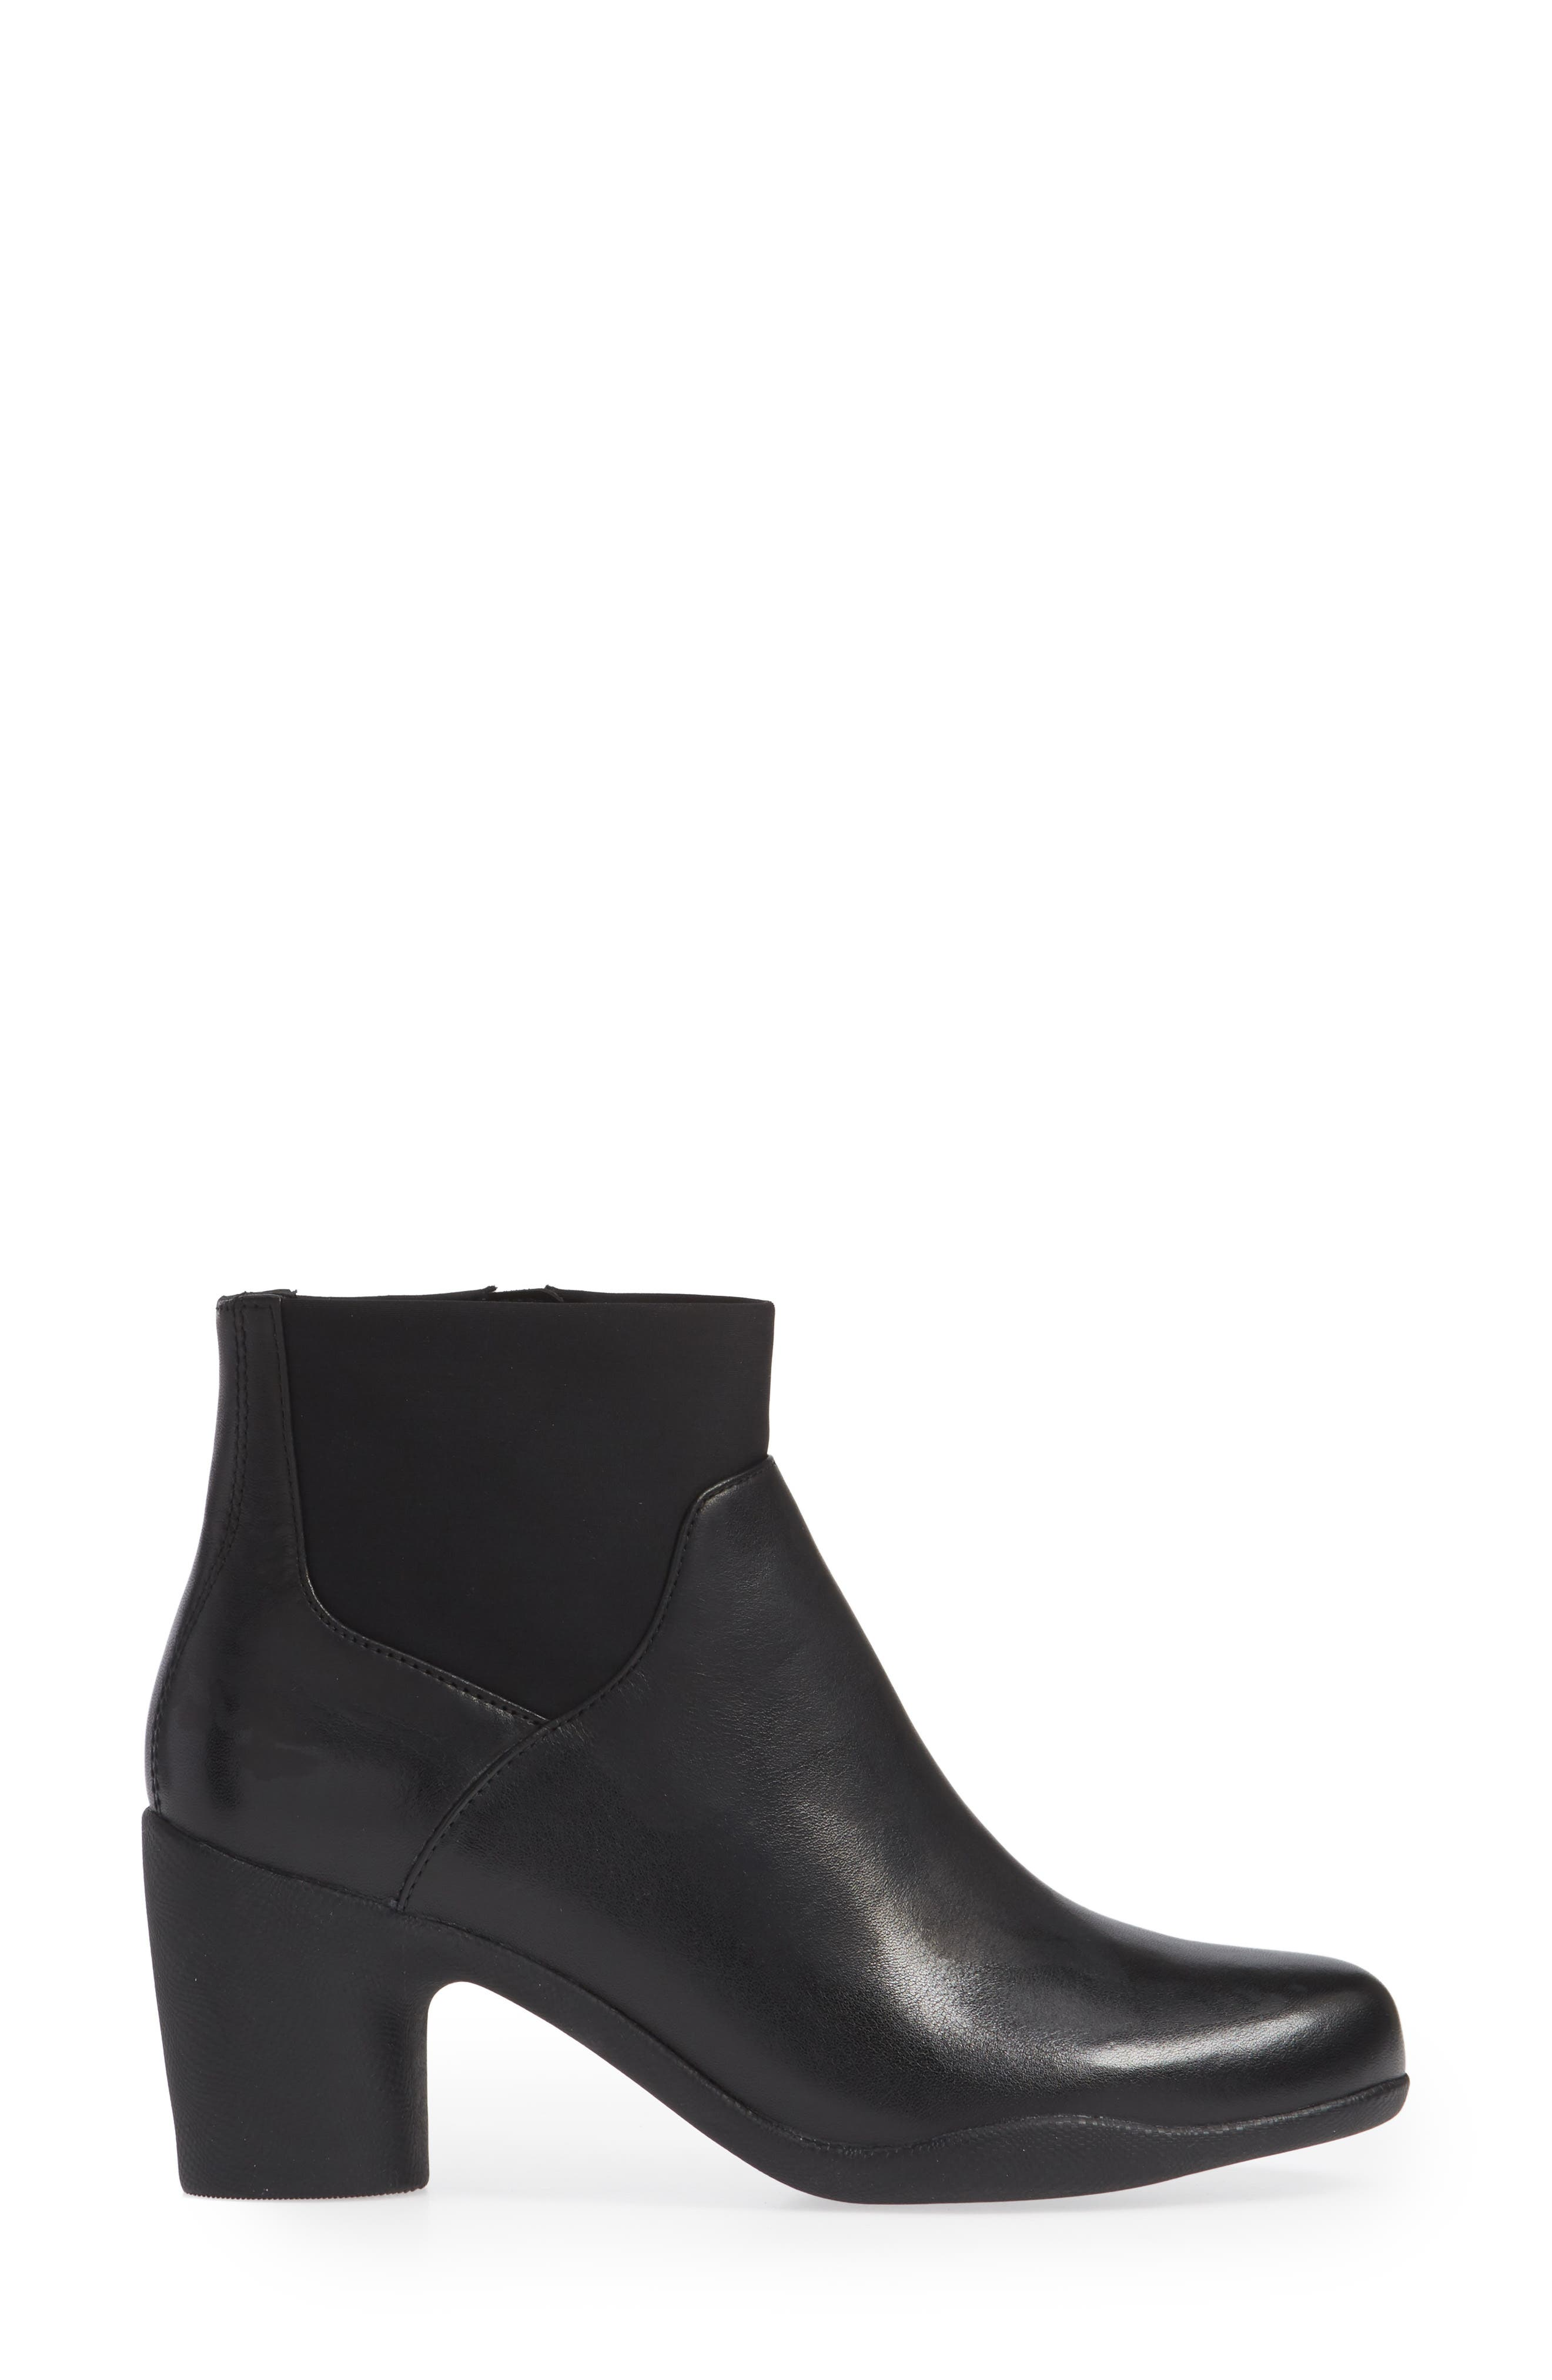 Clarks Un Rose Mid Ankle Boot,                             Alternate thumbnail 3, color,                             BLACK LEATHER